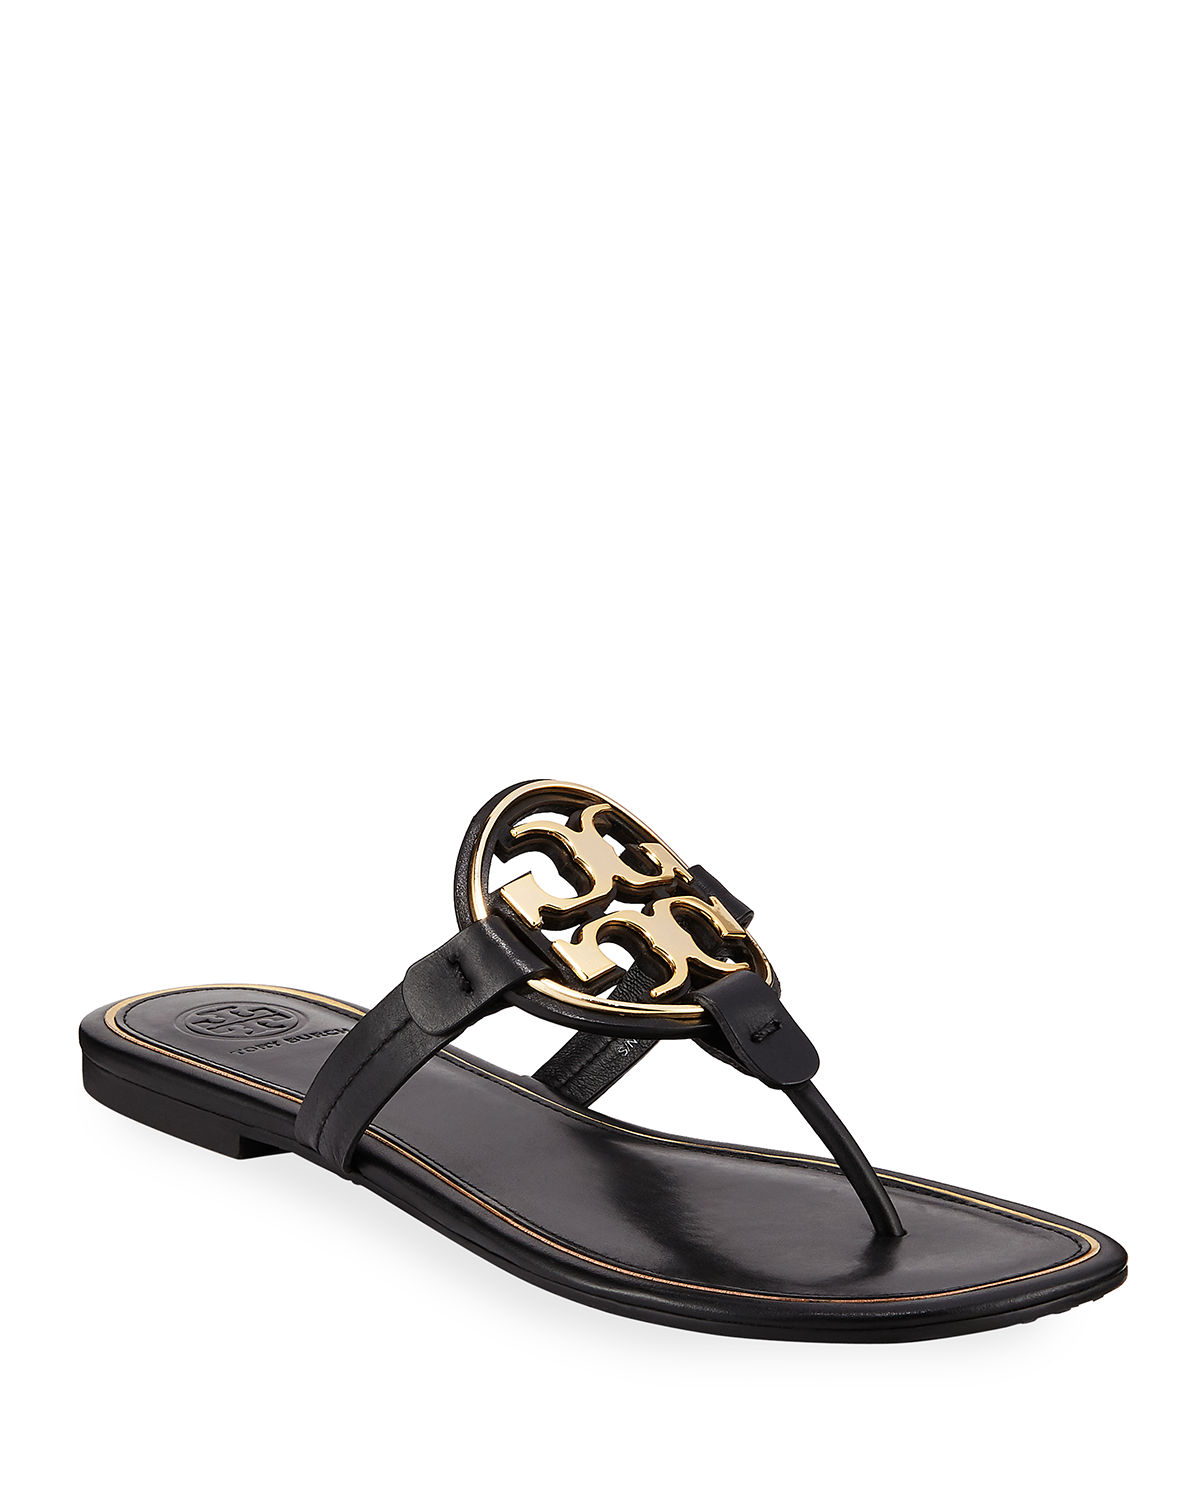 0b932dd93006 Tory Burch Miller Flat Metal Logo Slide Sandals